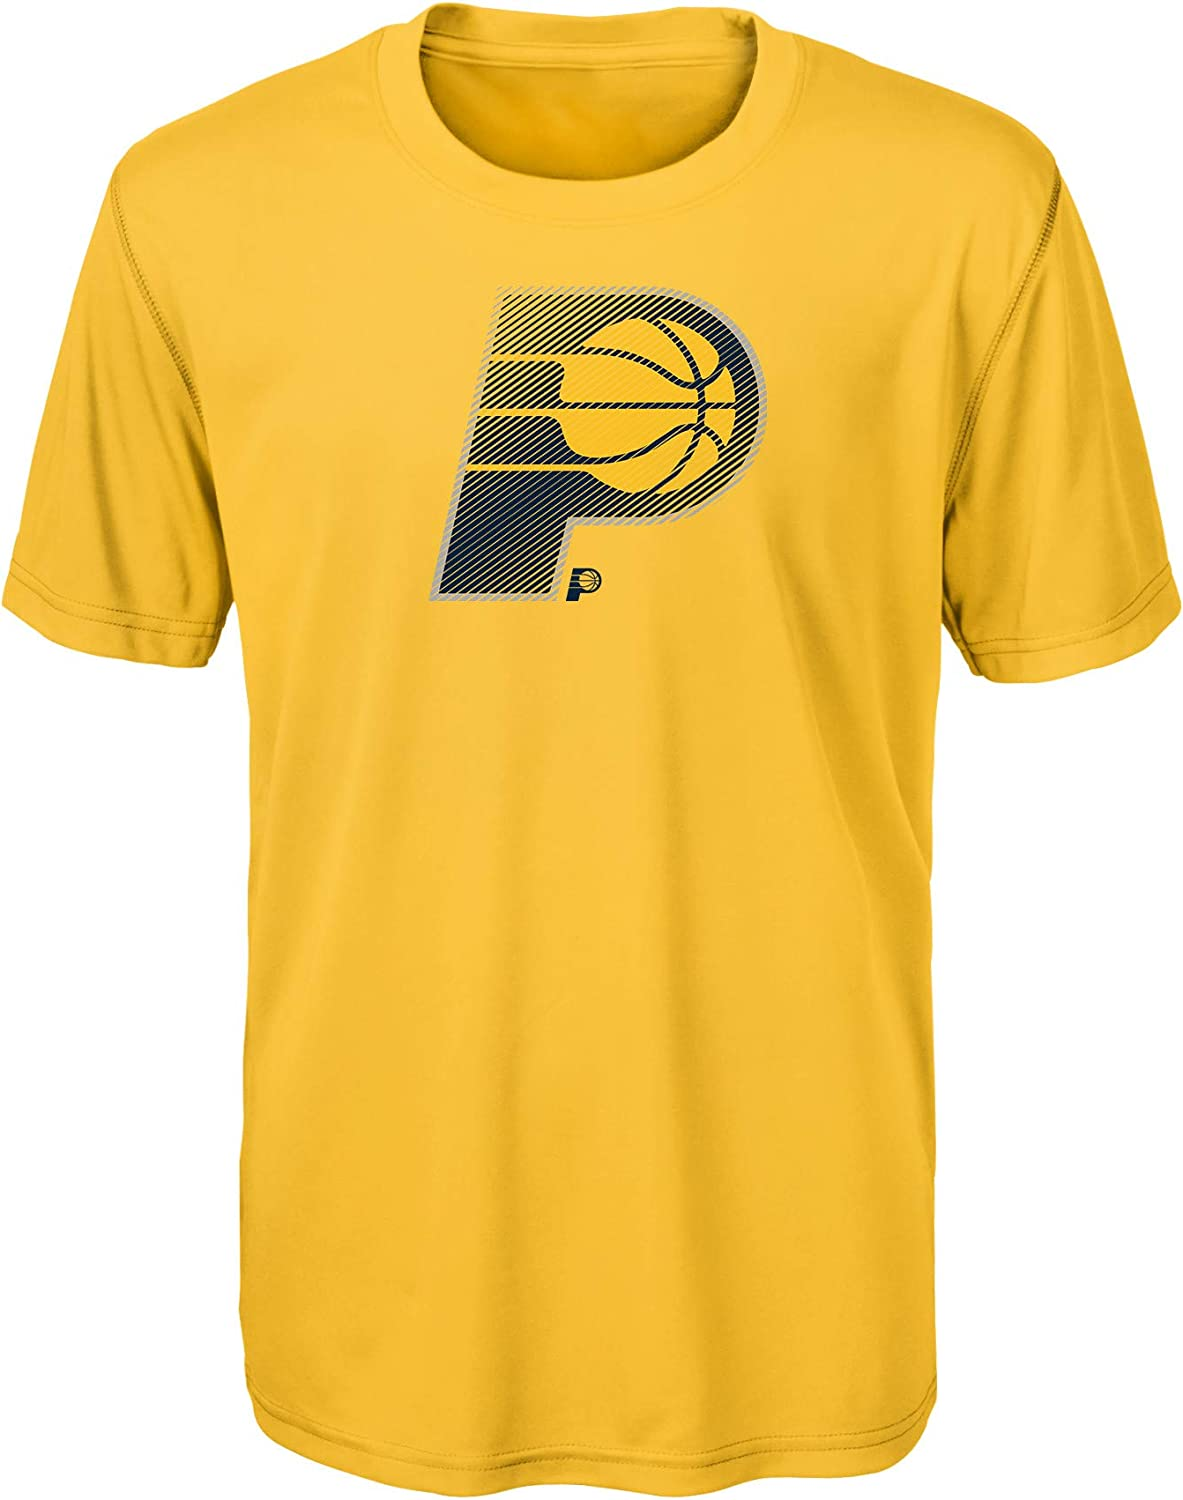 NBA Indiana Pacers Kids /& Youth Boys Motion Offense Alt Color Performance Tee 18 Youth X-Large Yellow